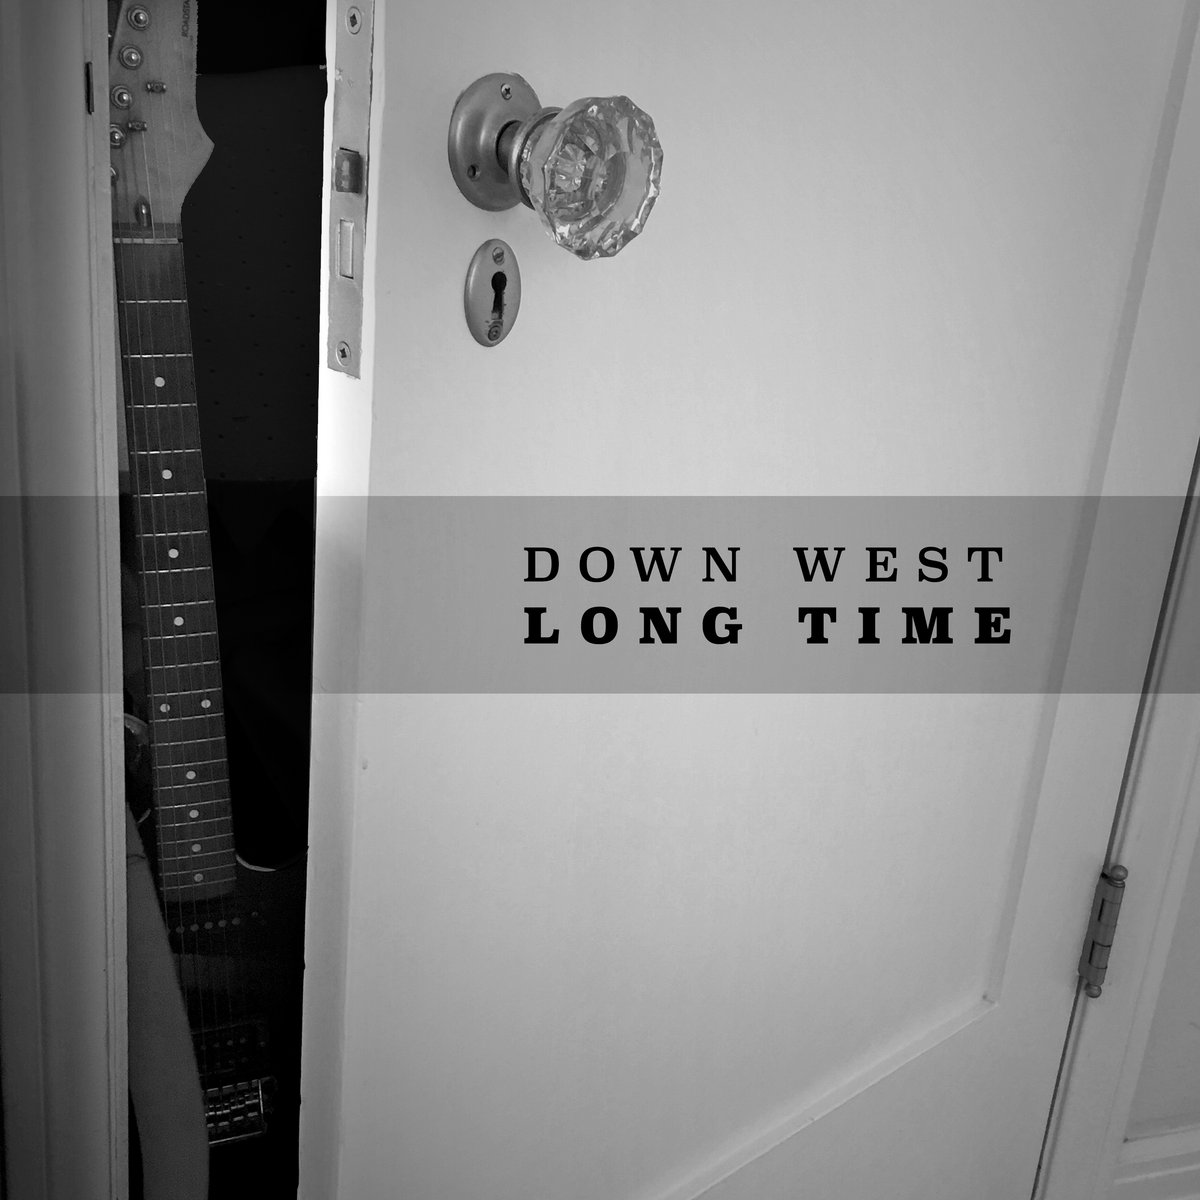 Long Time by Down West